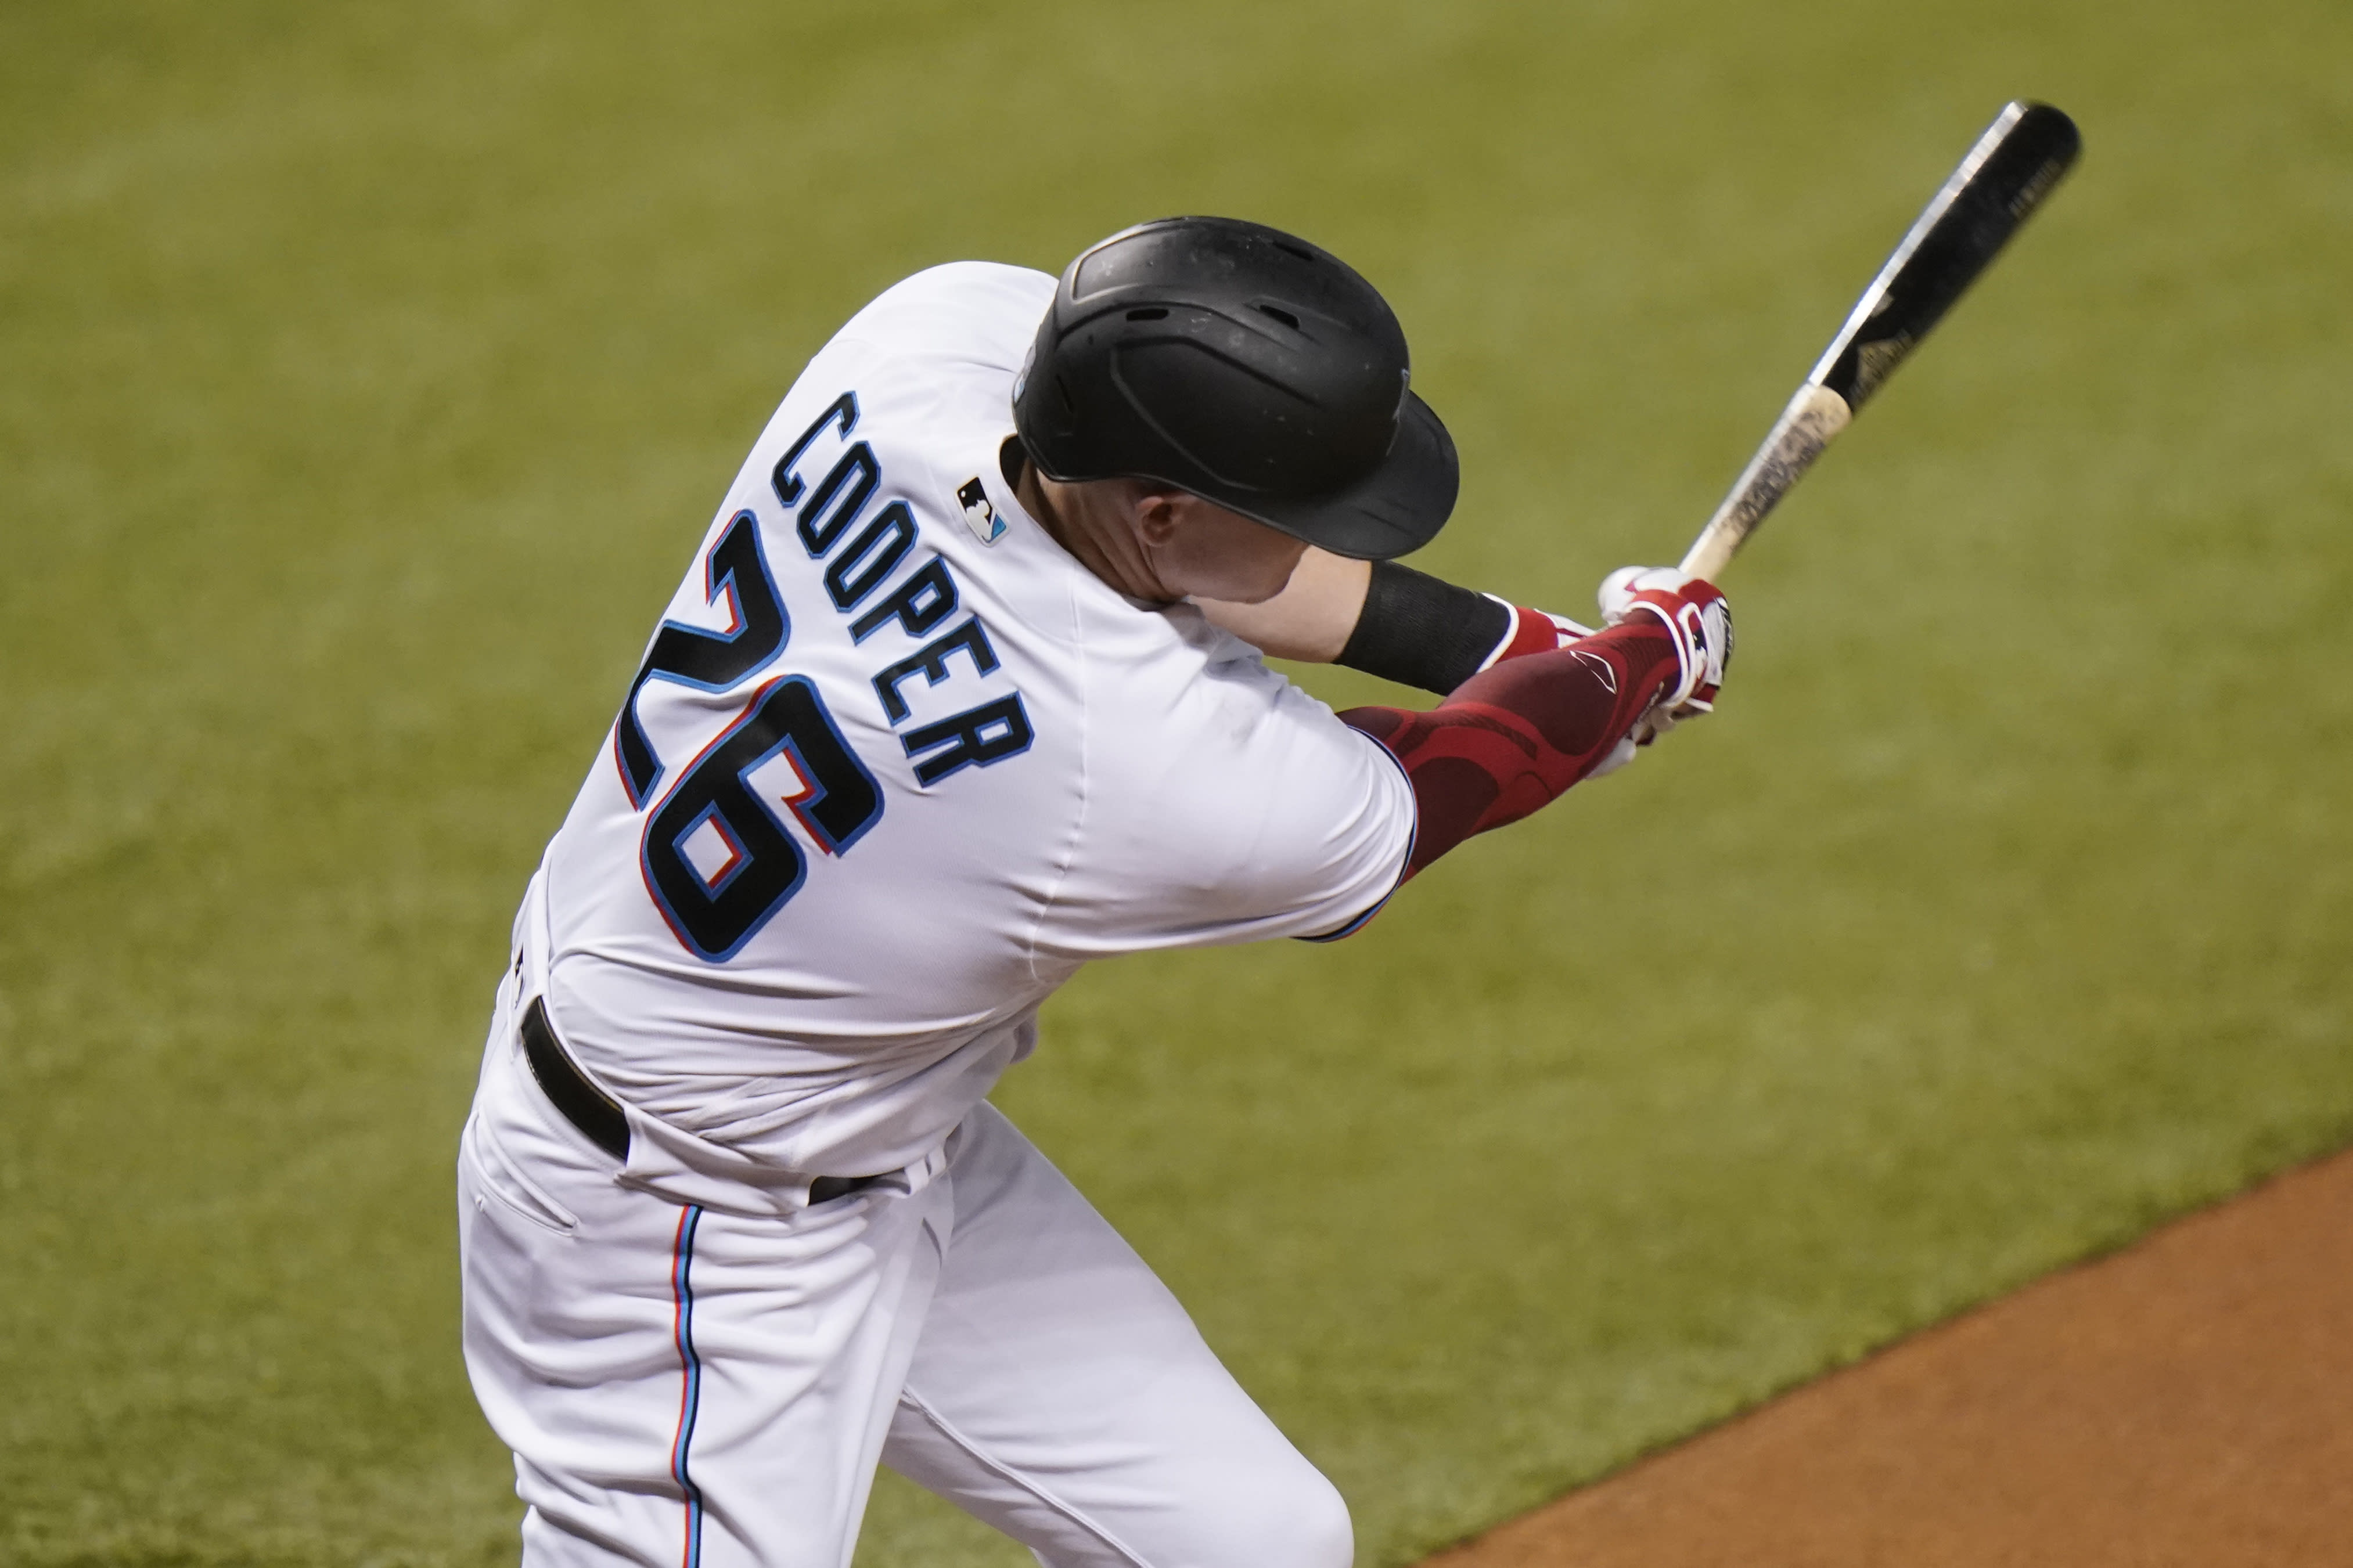 Miami Marlins' Garrett Cooper (26) hits a two-run home run during the first inning of a baseball game against the Boston Red Sox, Wednesday, Sept. 16, 2020, in Miami. (AP Photo/Lynne Sladky)